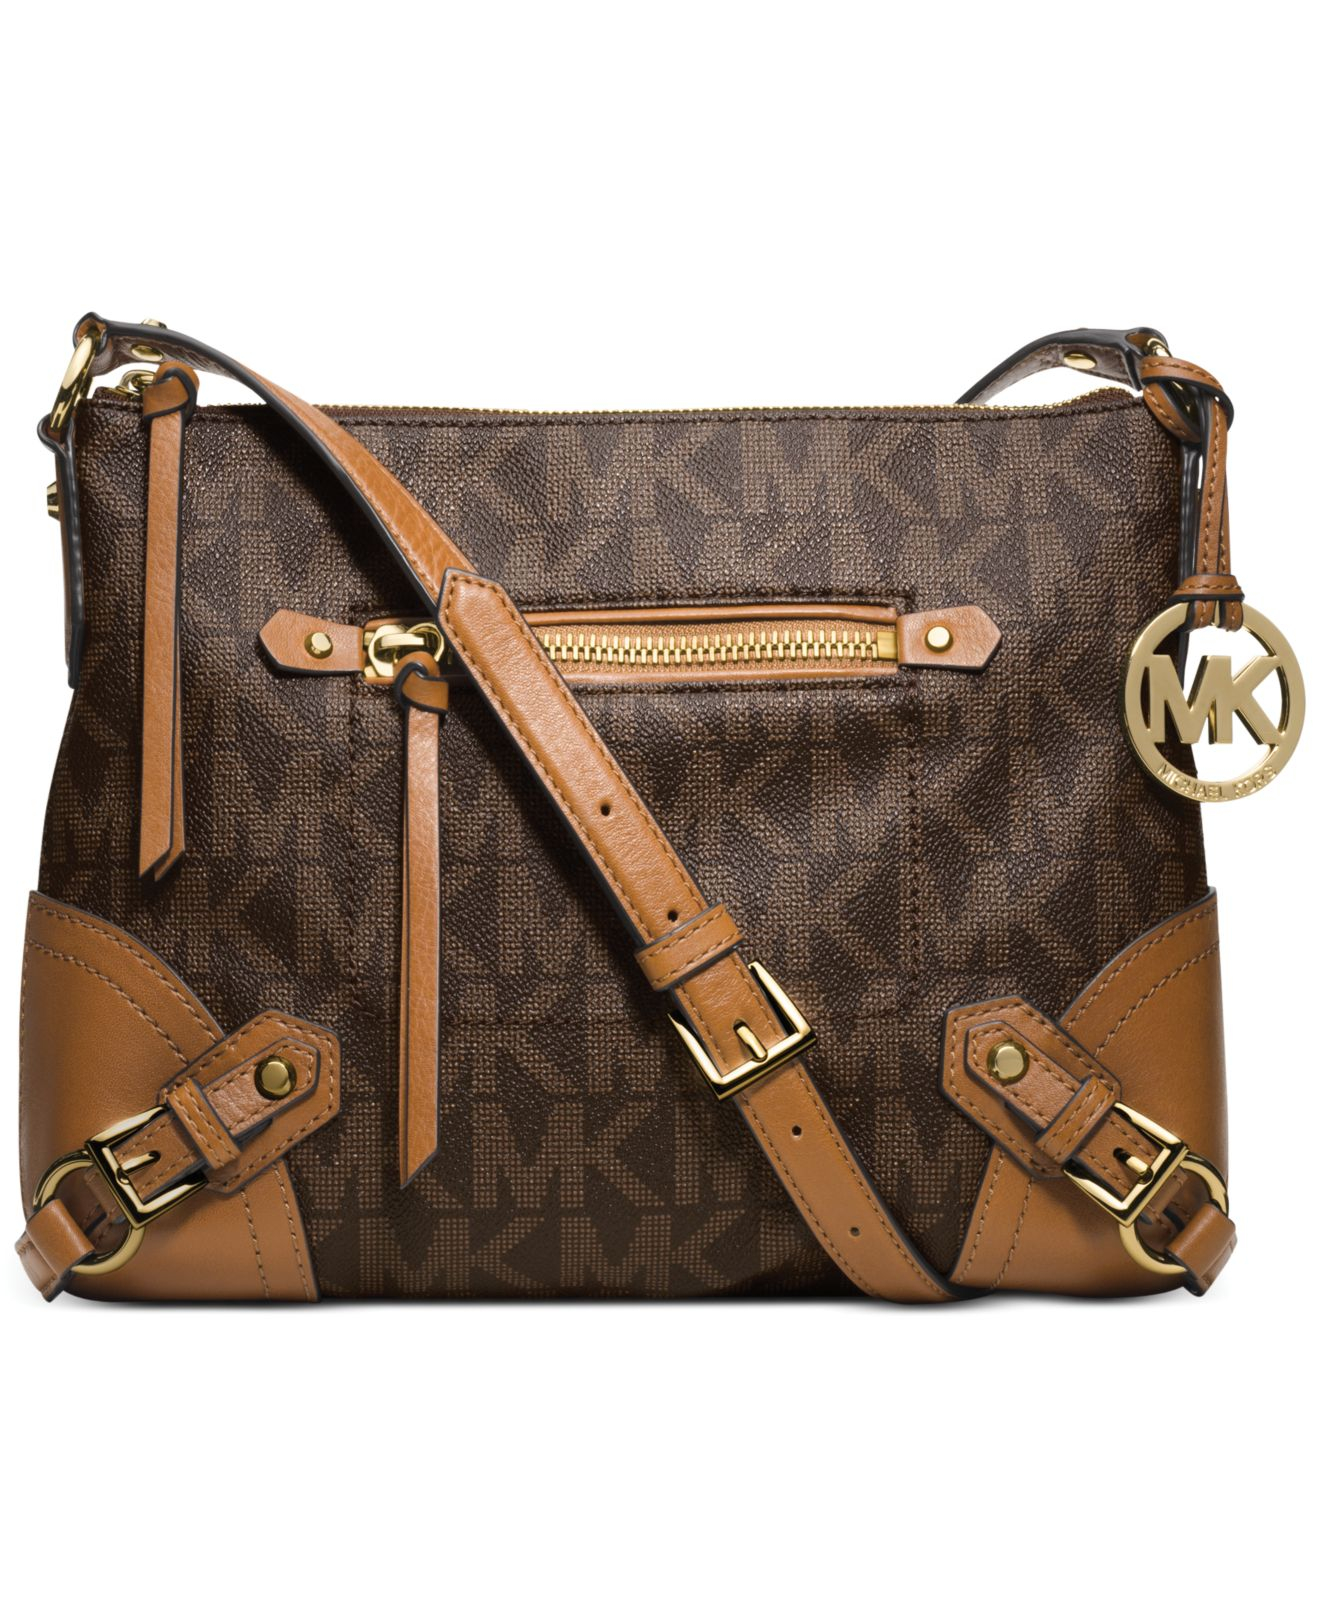 83828dc17b67 ... wholesale lyst michael kors michael fallon messenger bag in brown 02866  8241f